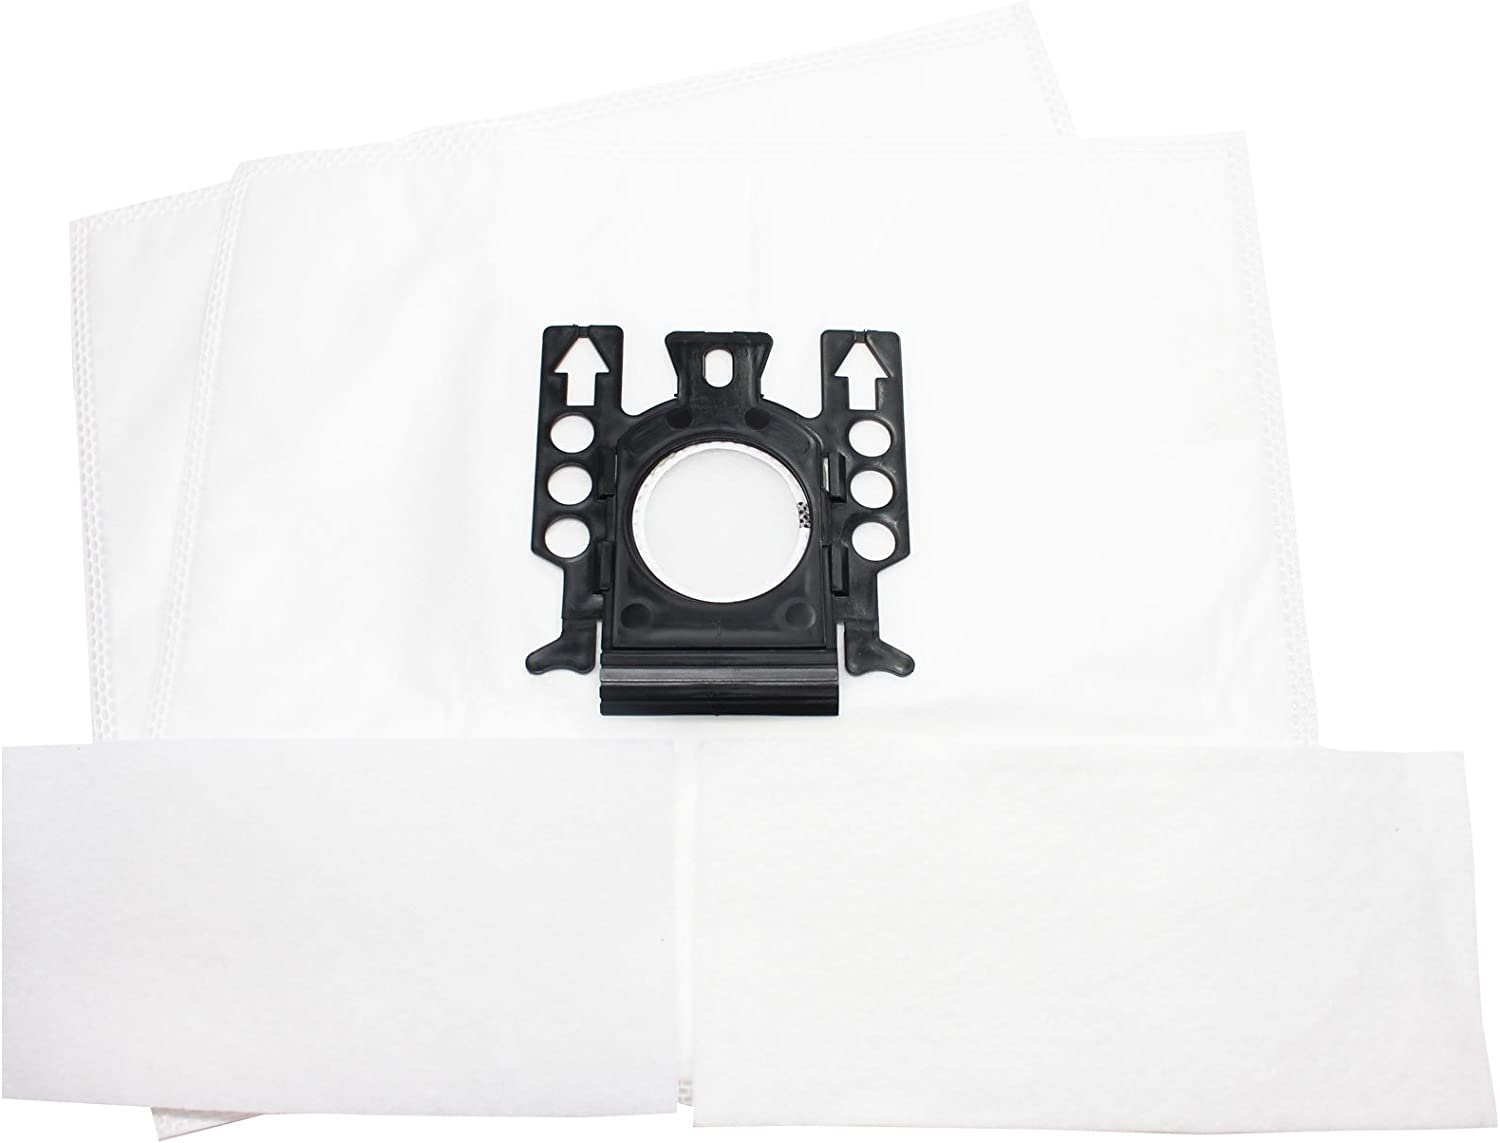 Upstart Battery 20 Replacement for 結婚祝い with 信頼 S251i Miele Vacuum Bags